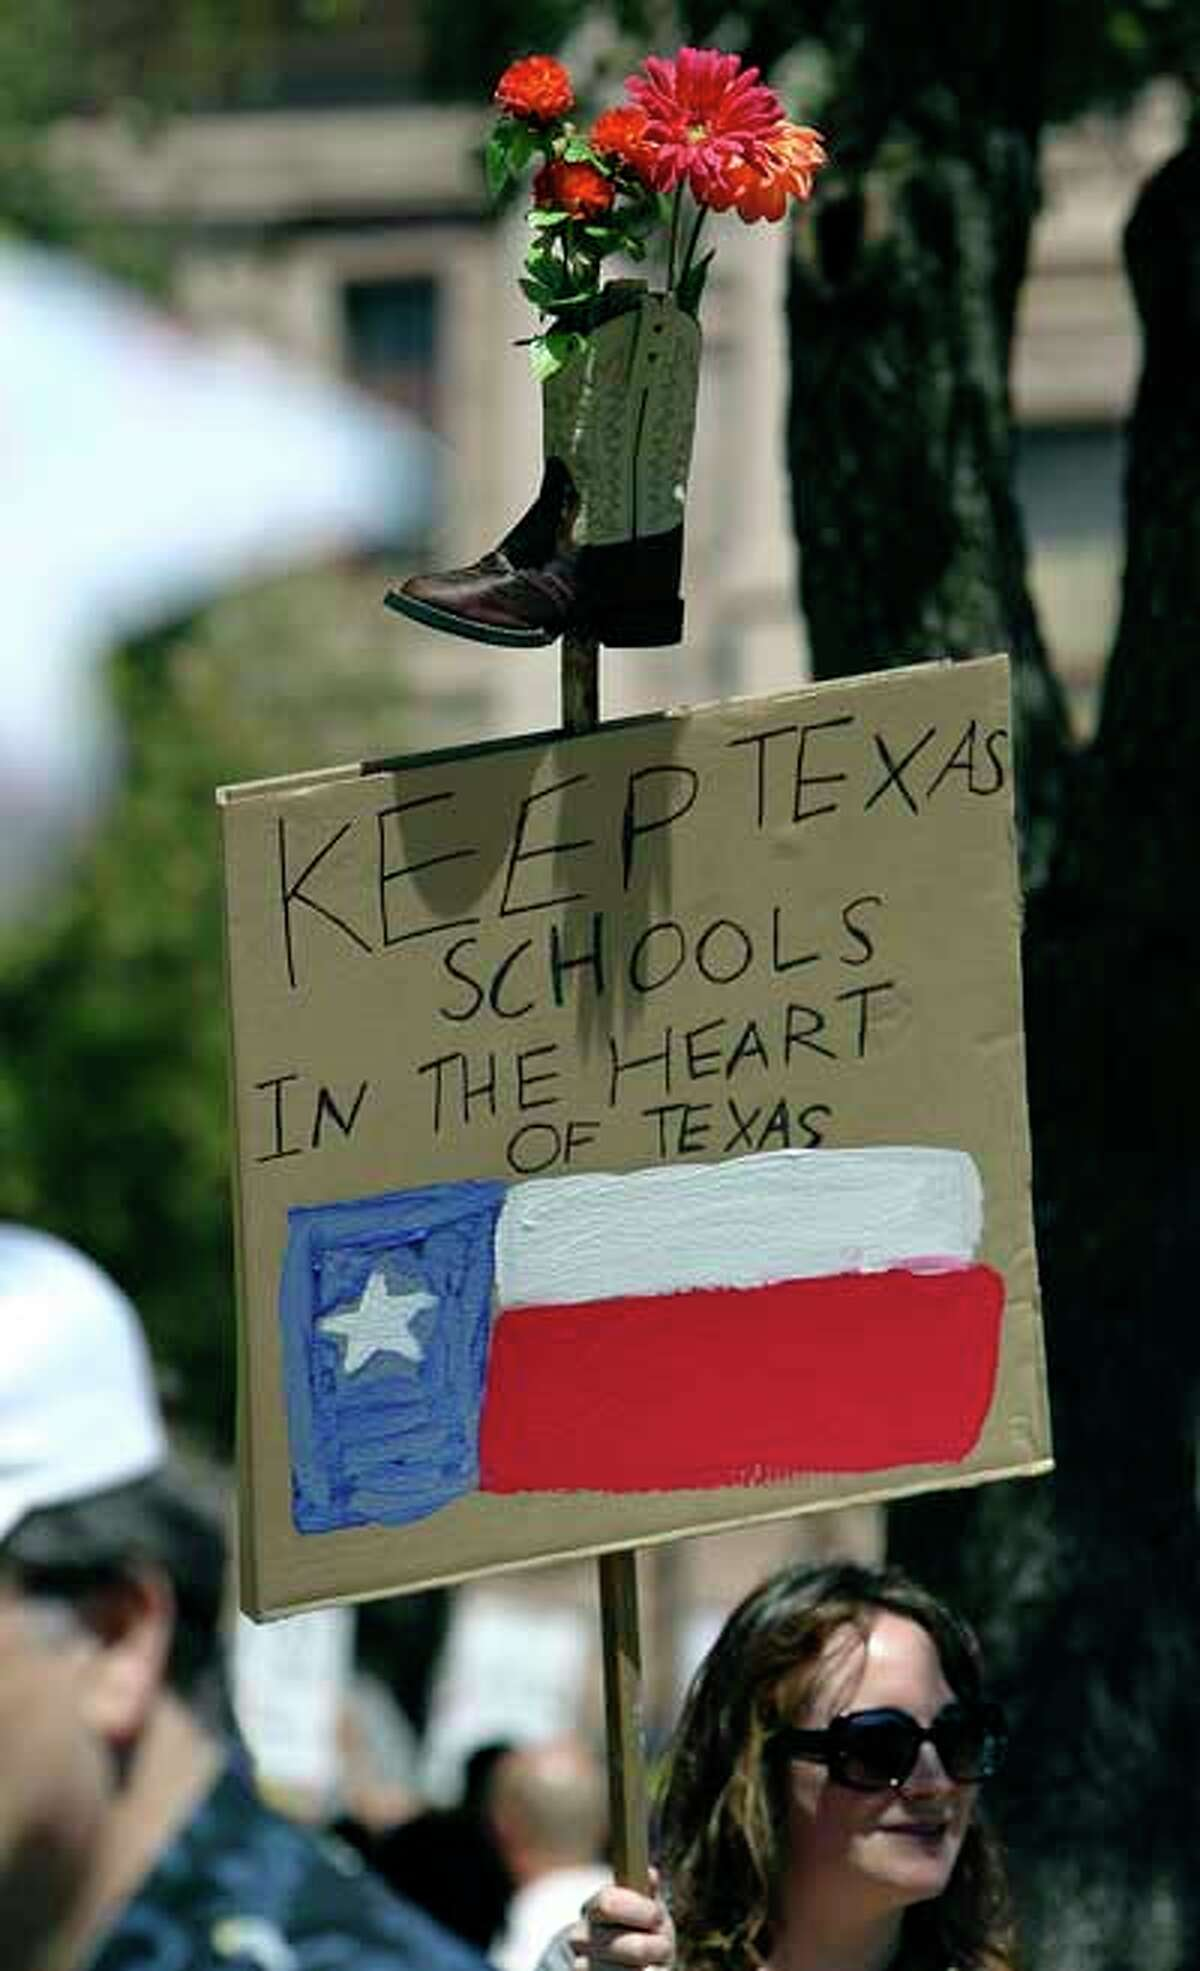 Marie Catrett holds a sign at a rally by thousands of educators and supporters at the Texas Capitol to decry looming budget cuts and elimination of jobs for educators on Saturday, Mar. 12, 2011. The sign was made by her daughter, Julia, who attends a school in Austin that is proposed to be closed. Kin Man Hui/kmhui@express-news.net